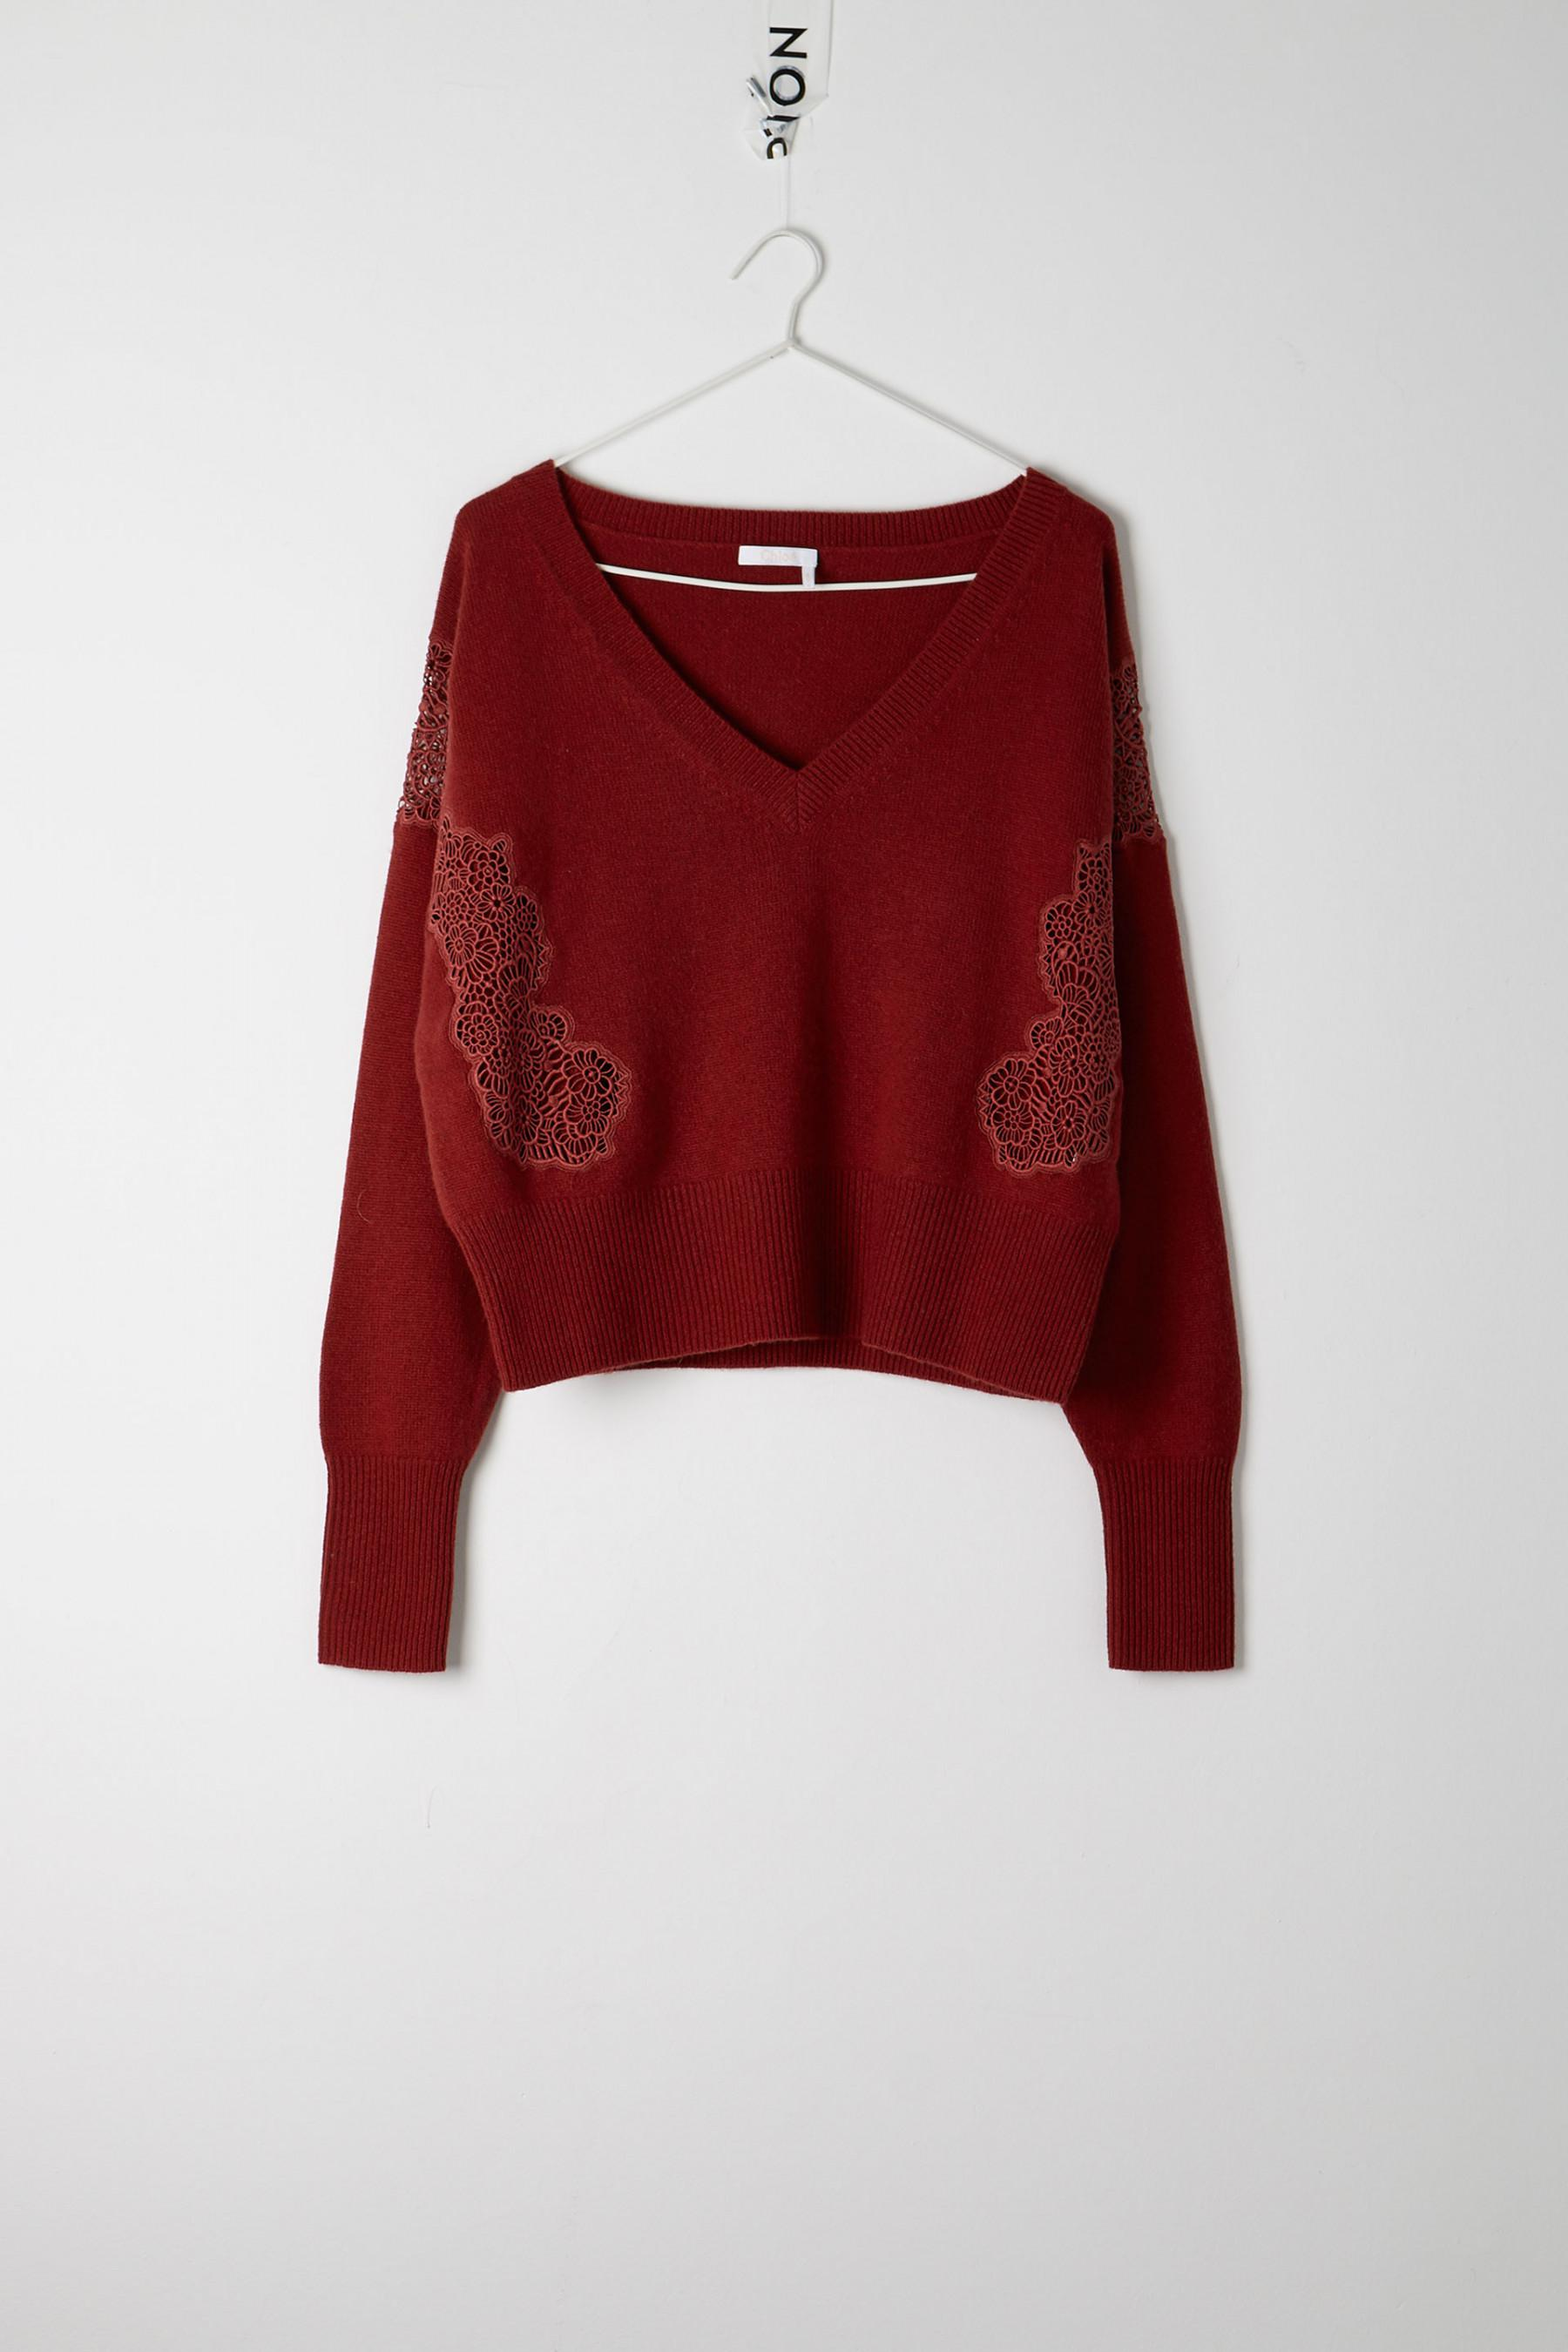 Chloé Lace Sweater in Red - Save 41% | Lyst